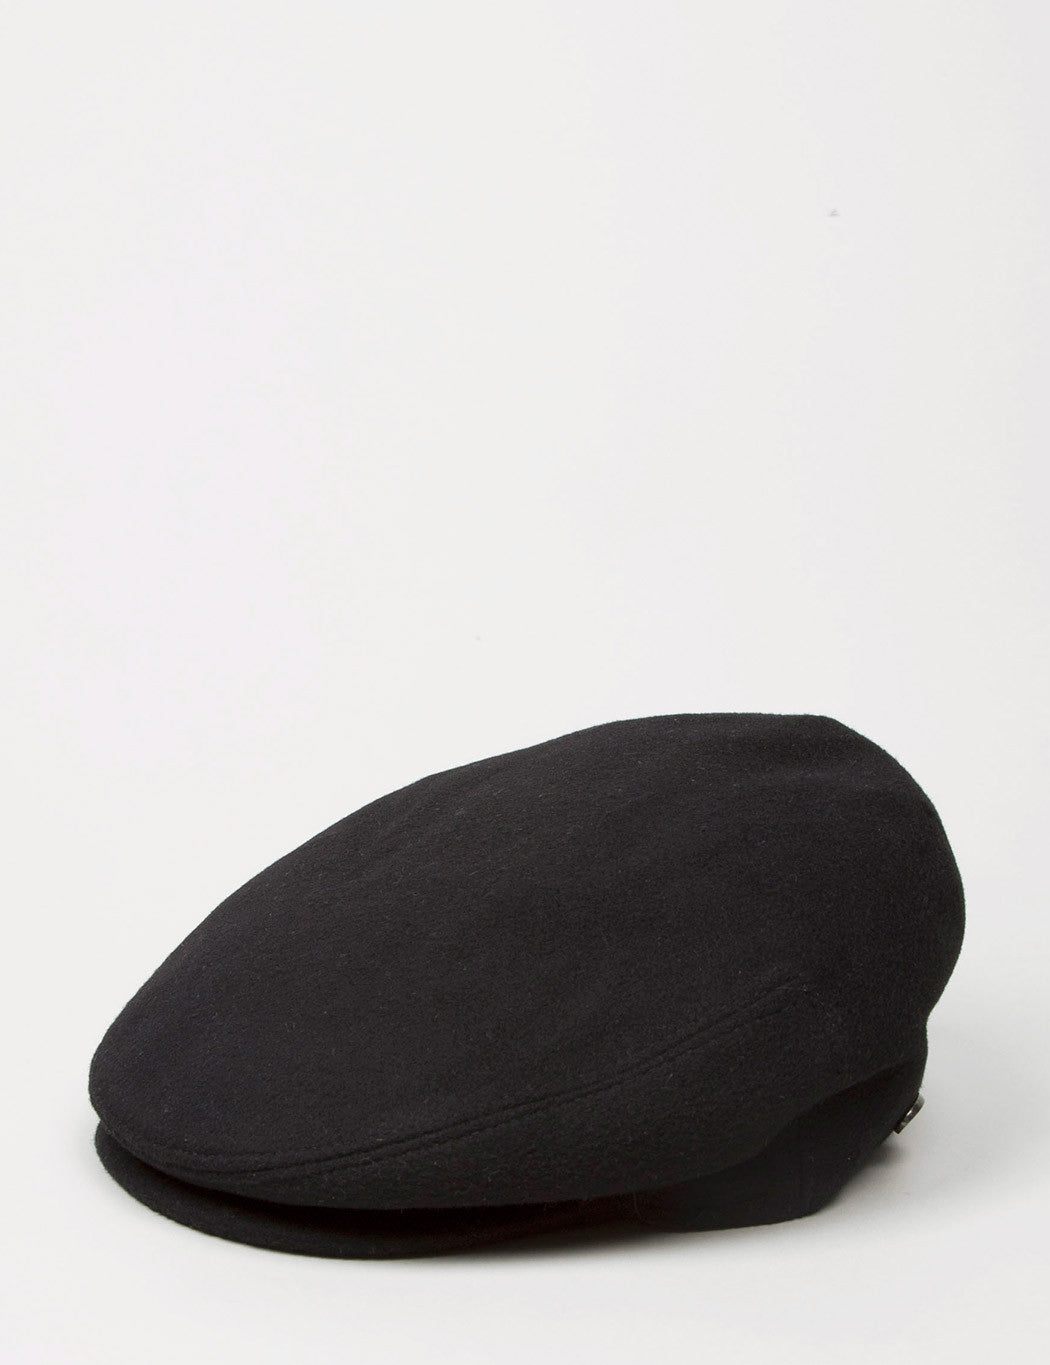 Bailey Cole Cashmere Flat Cap - Black